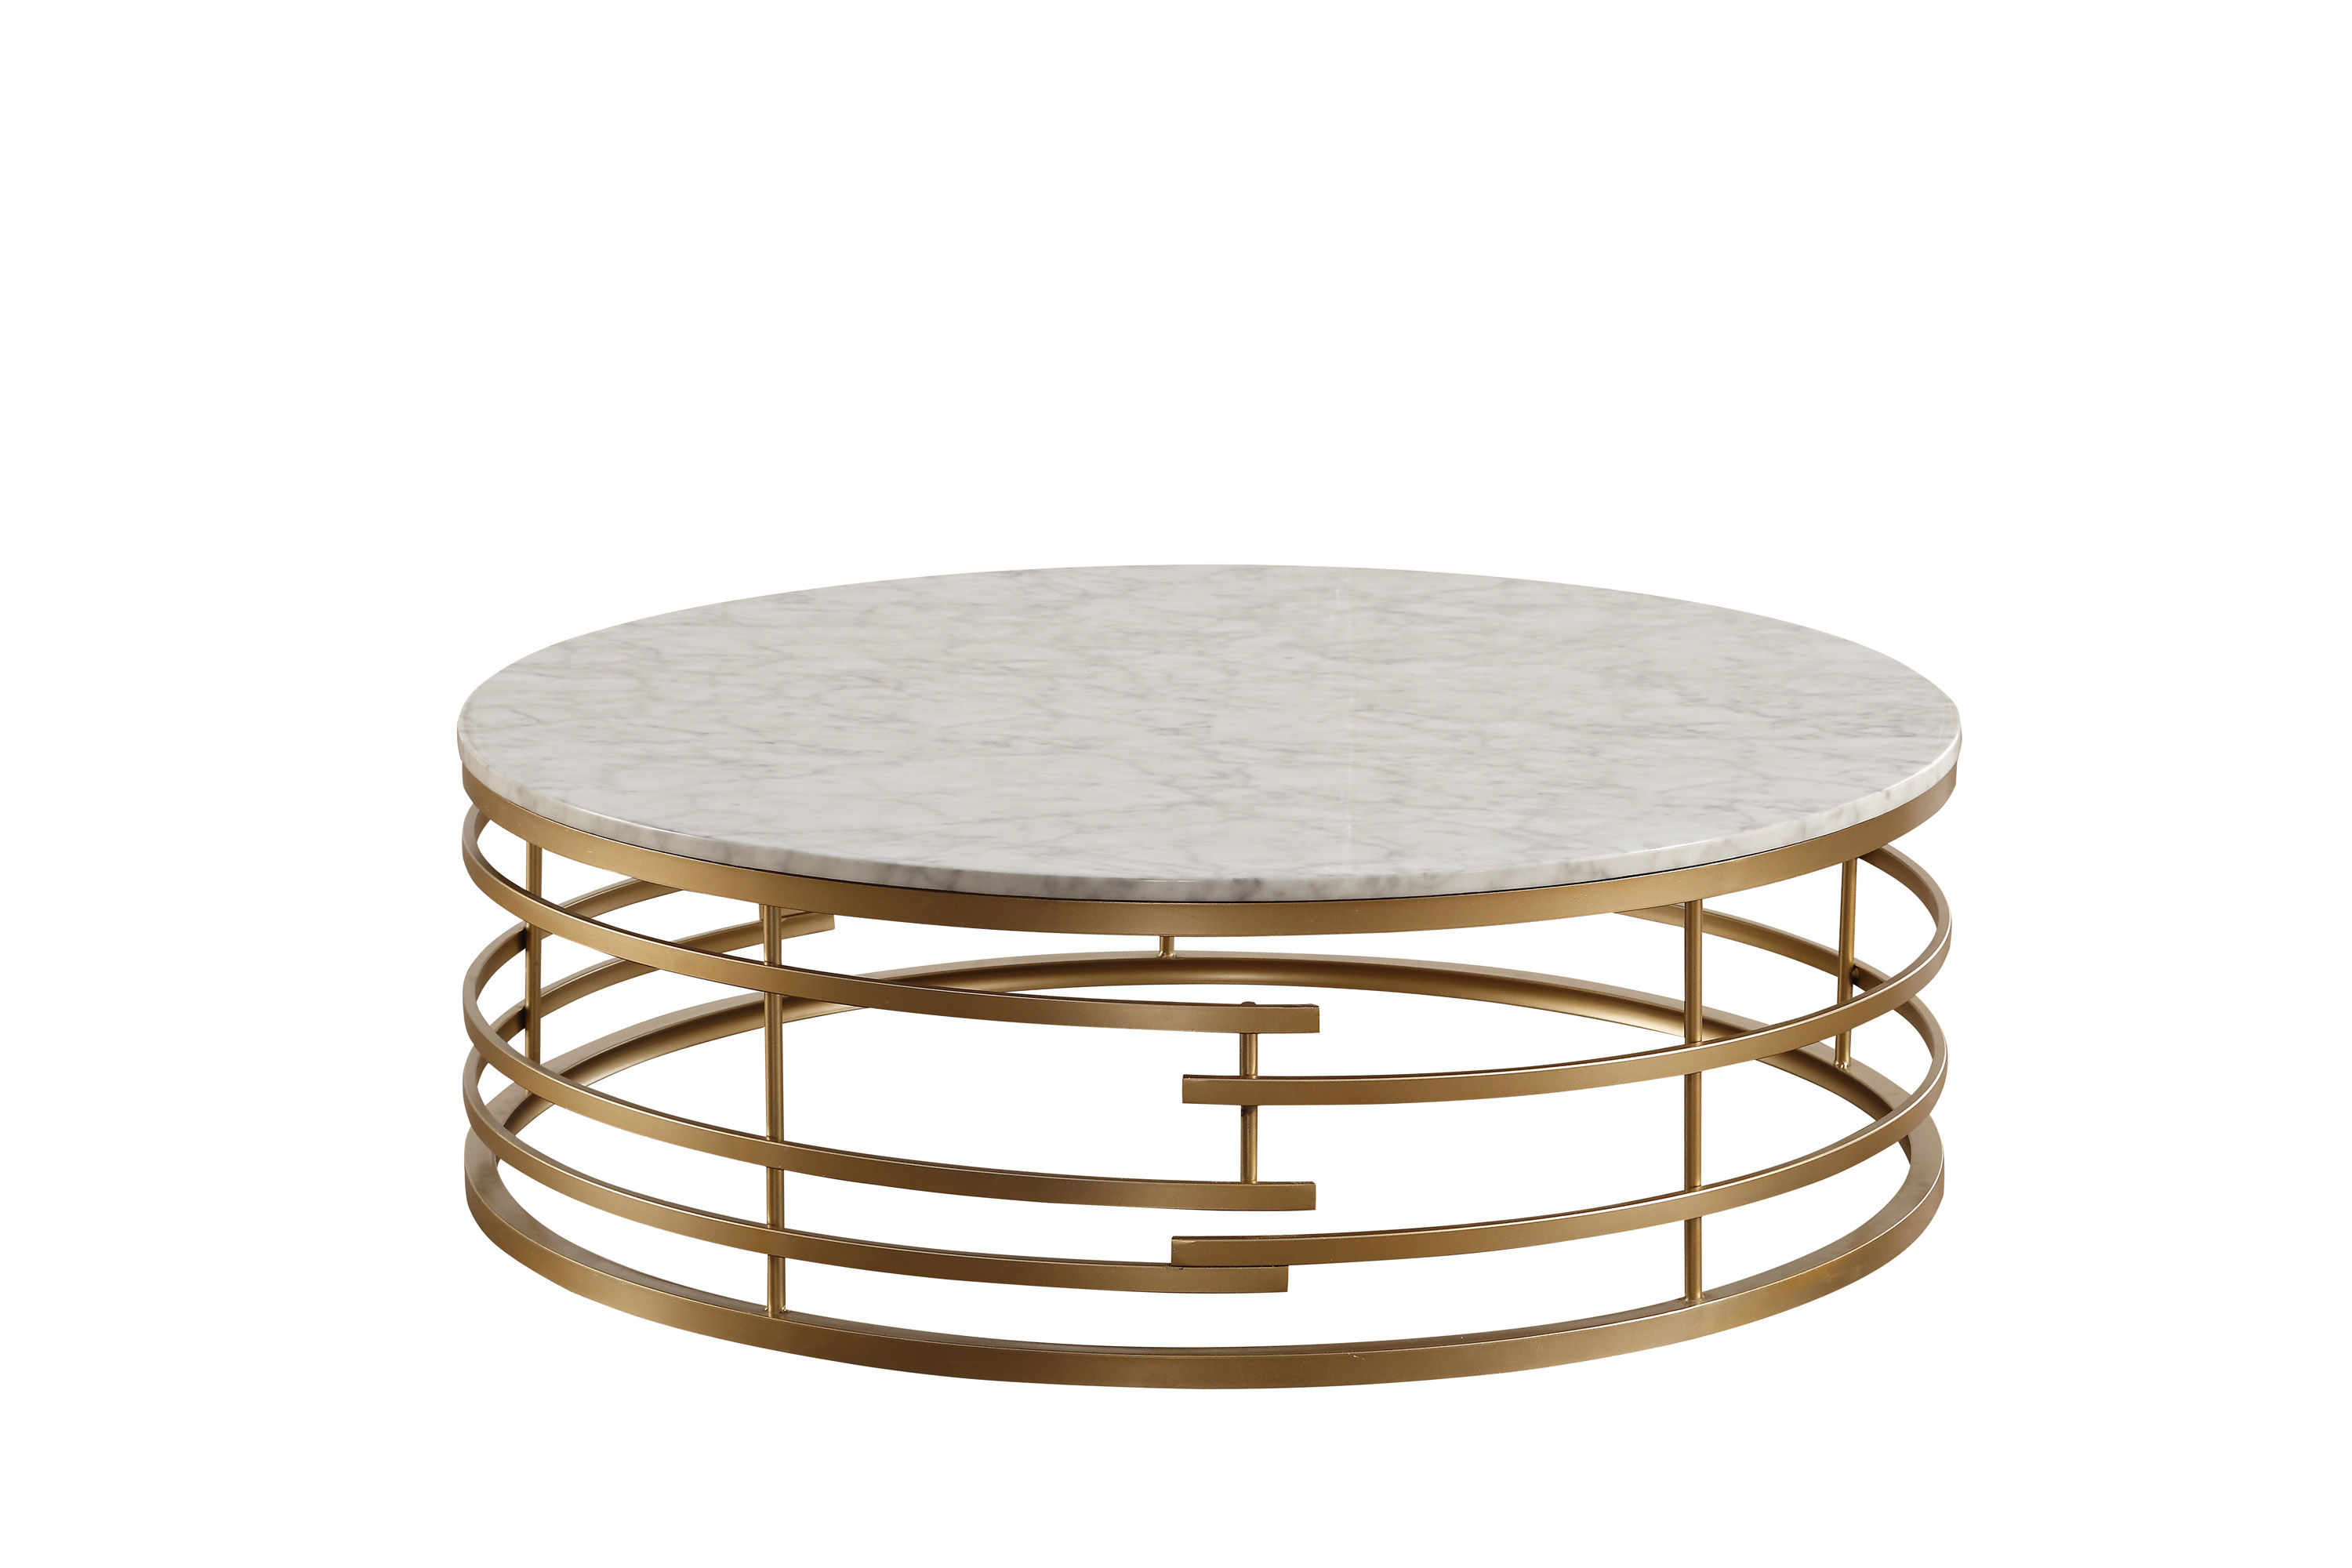 Home Elegance Brassica Gold Round Coffee Table